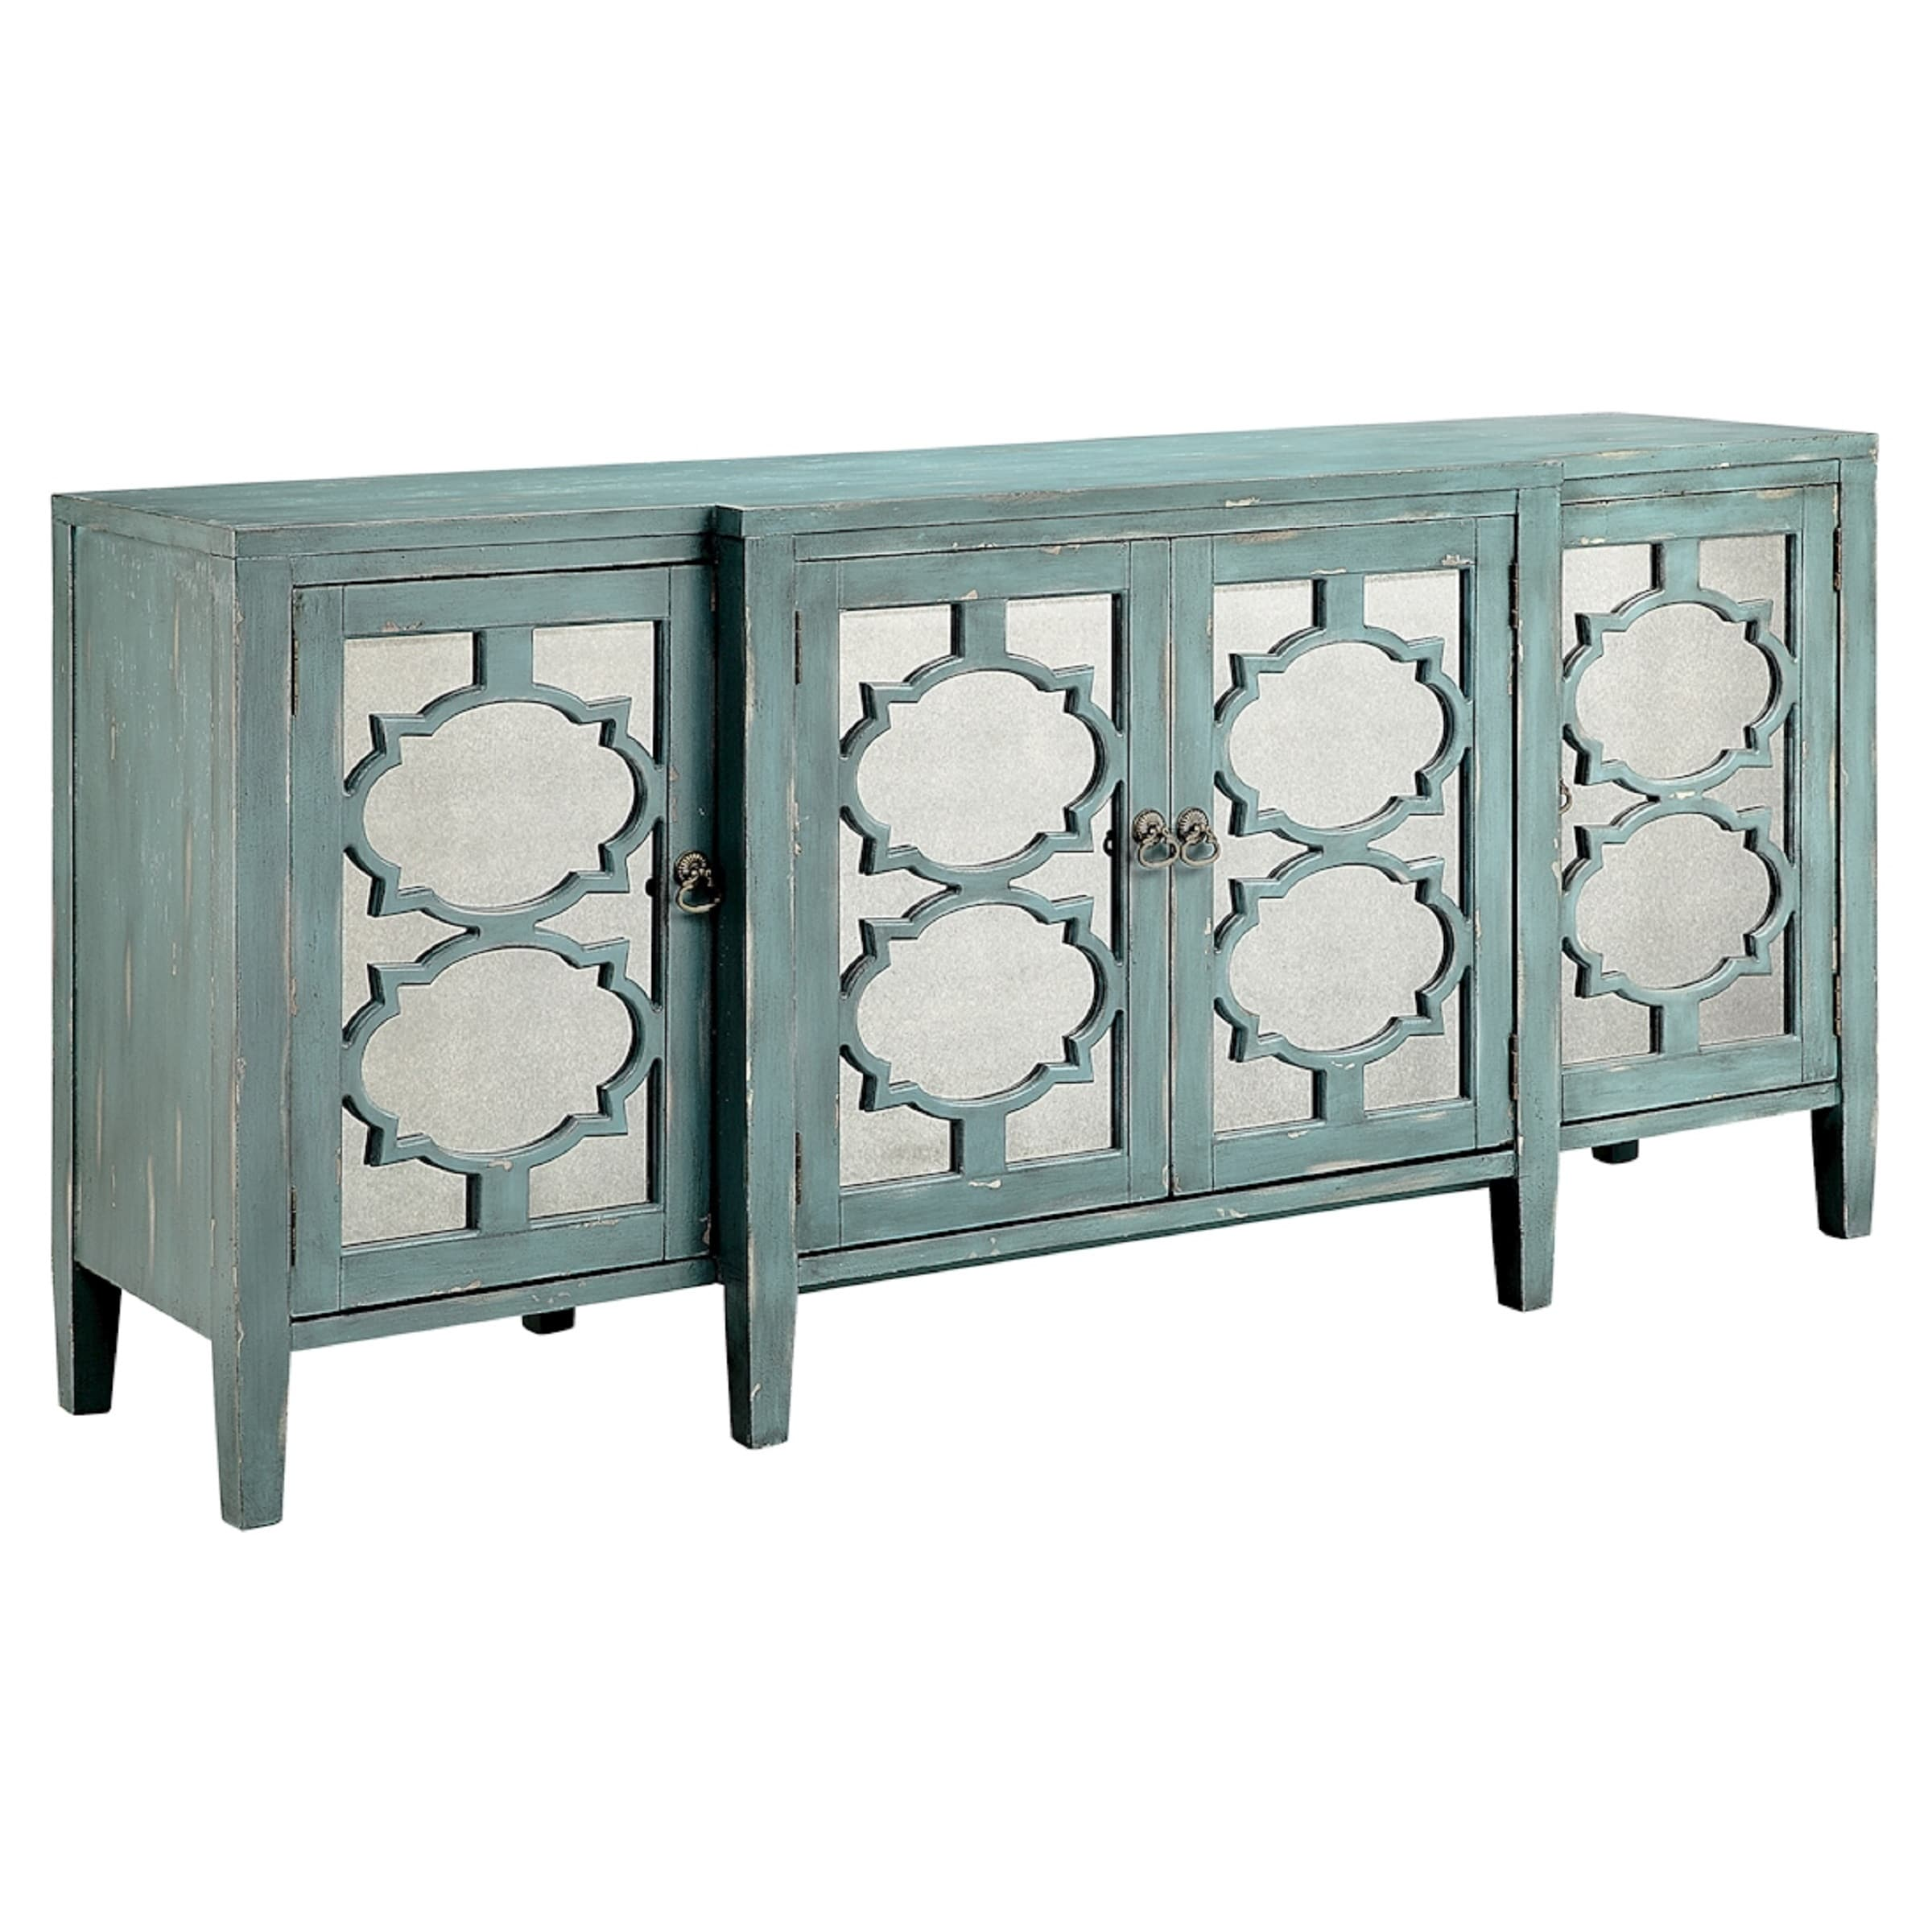 Picture of: Carrie Ocean Blue Breakfront Credenza Buffet Table Overstock 11989740